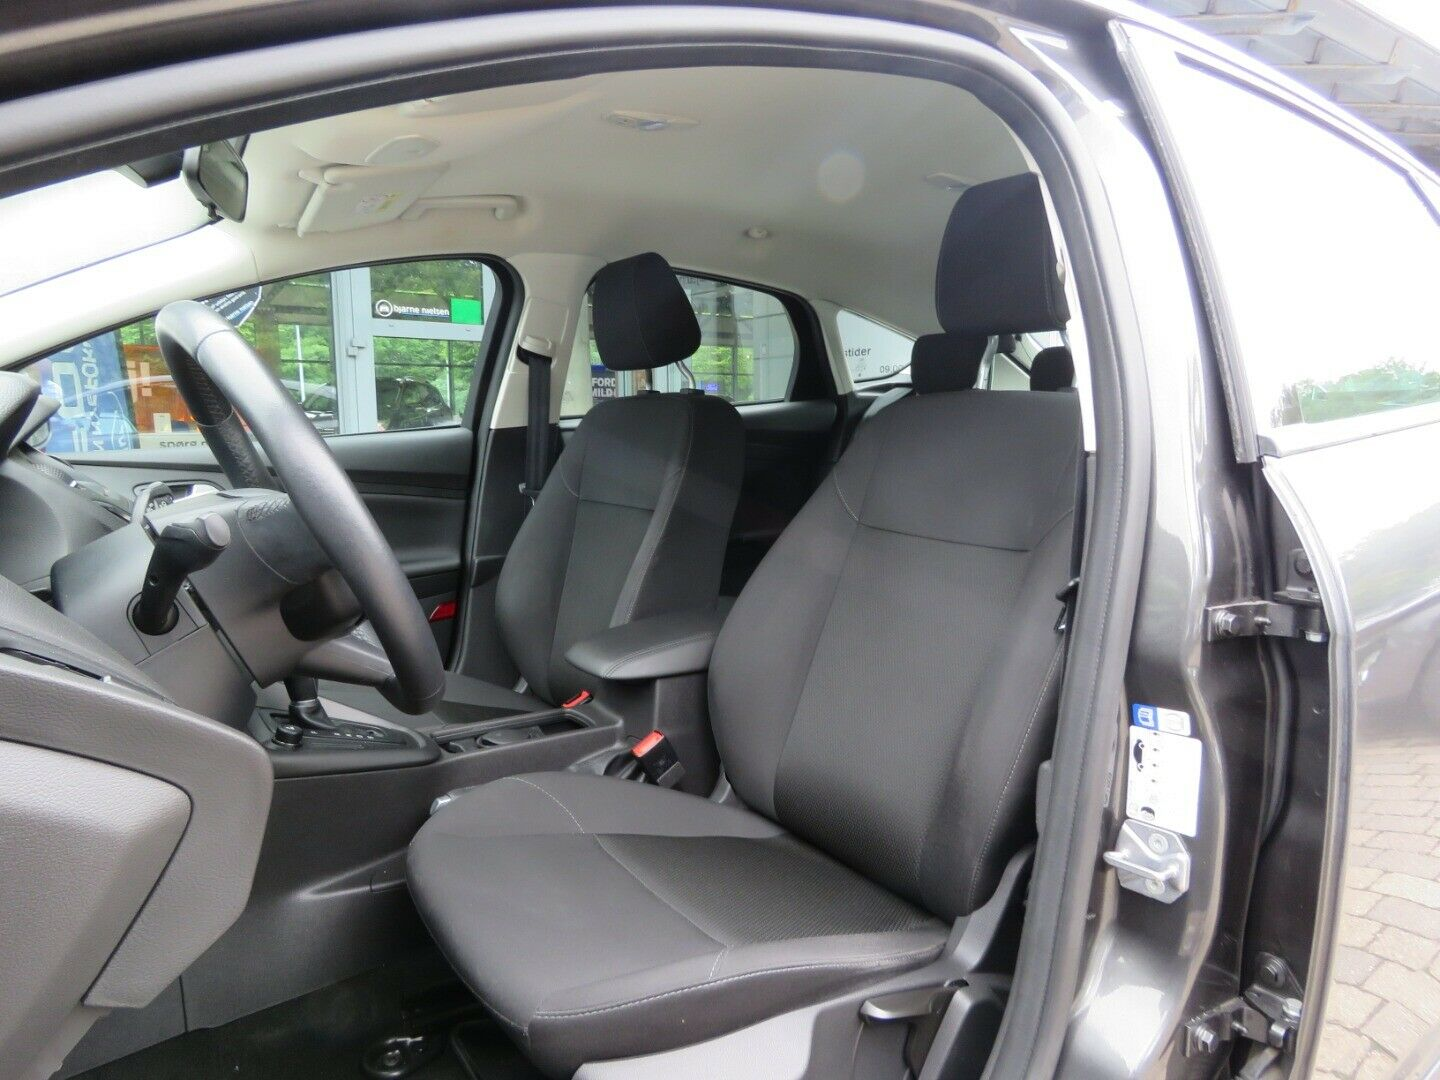 Ford Focus 1,6 Ti-VCT 125 Edition aut. - billede 5